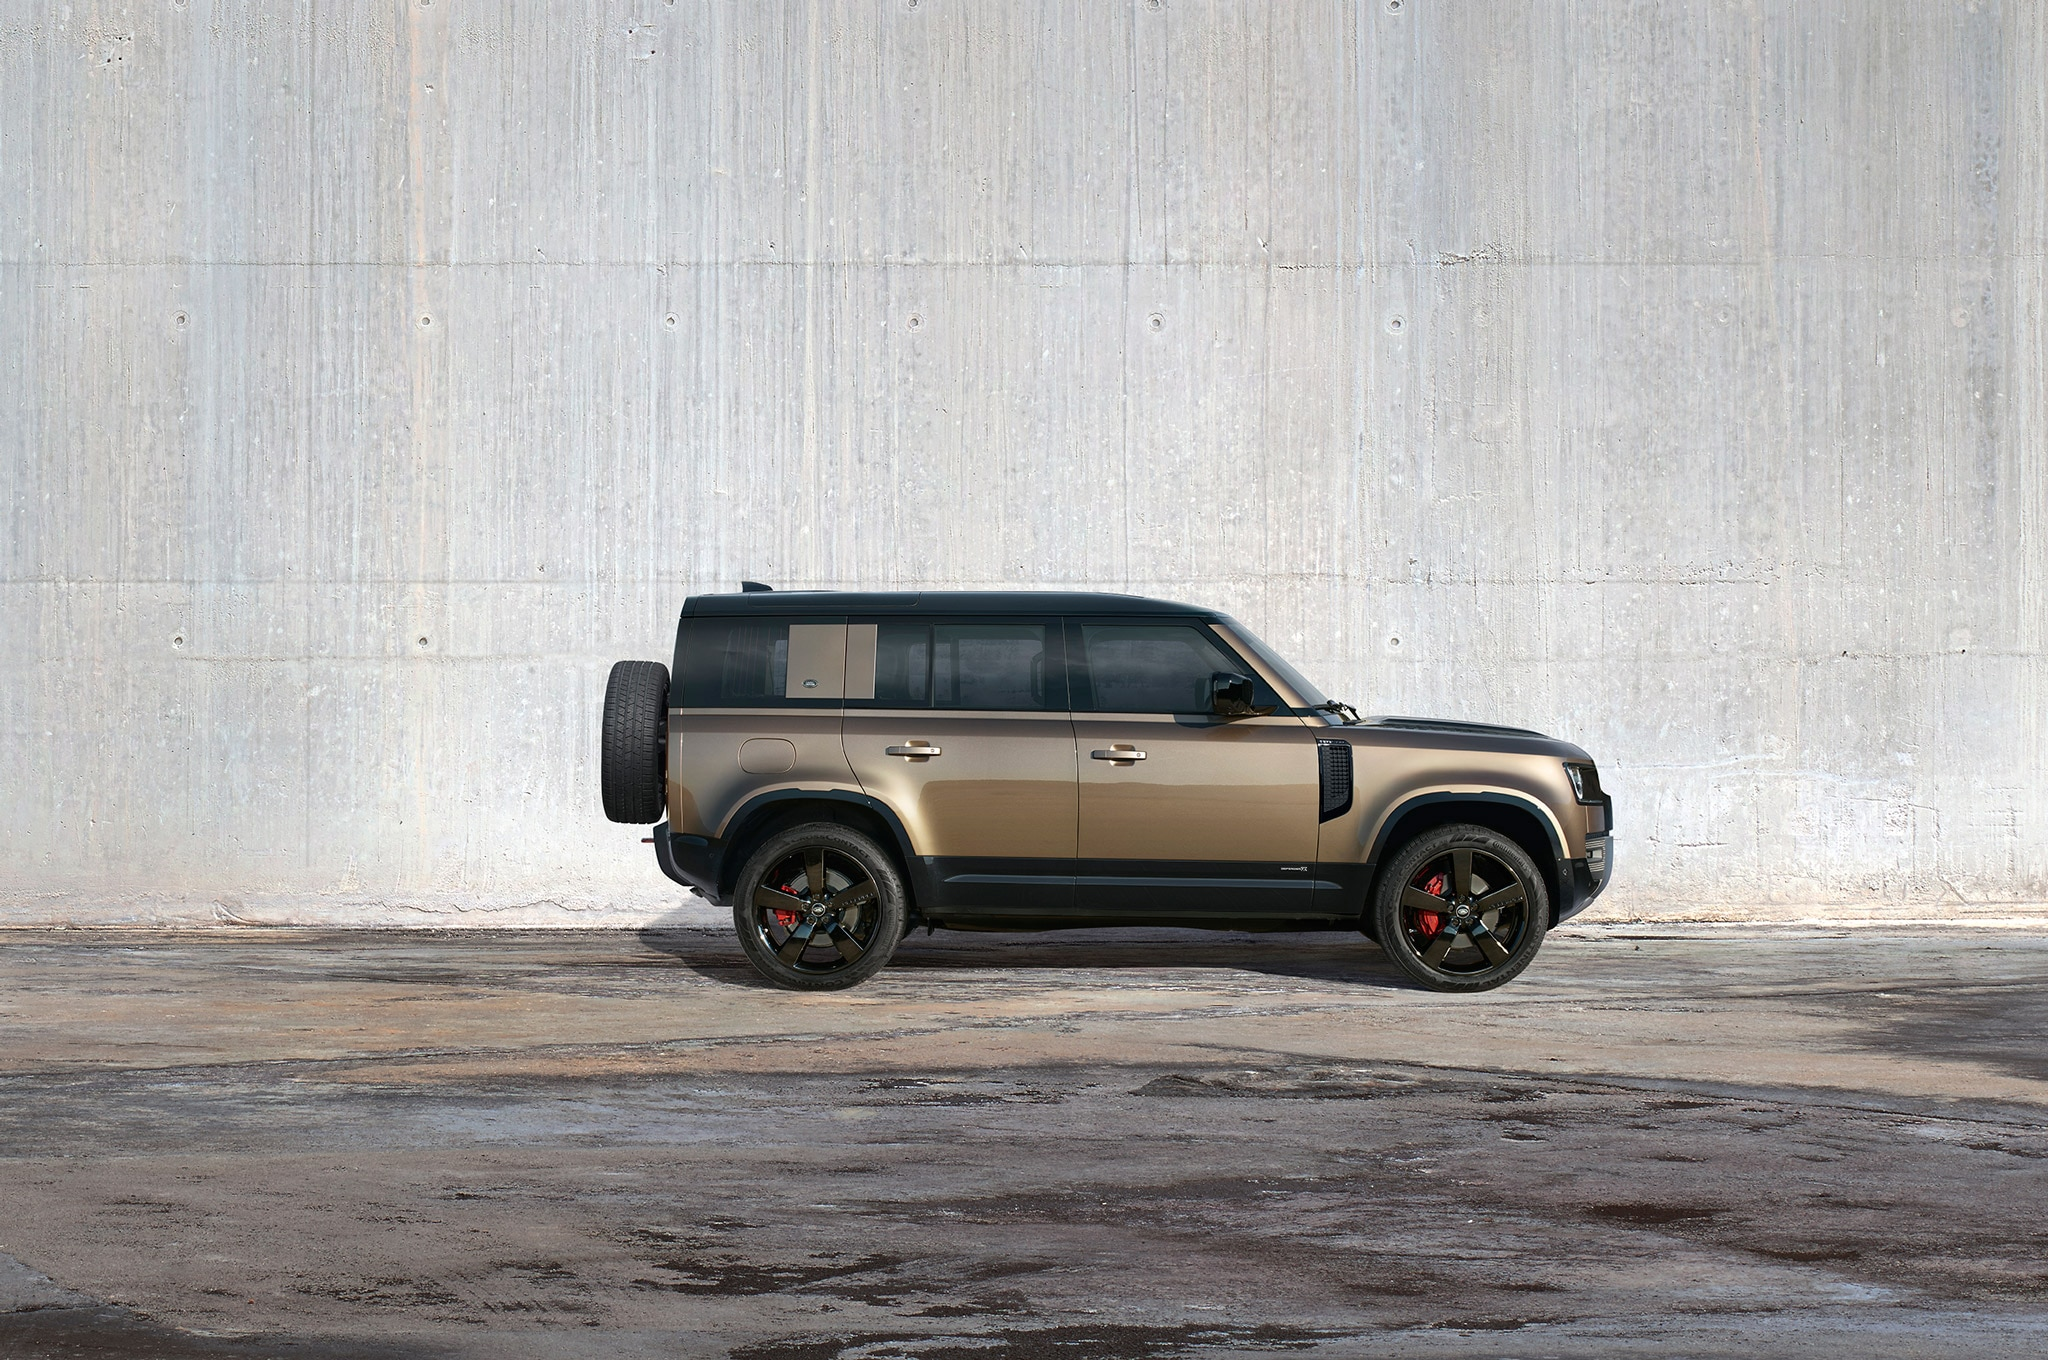 2020 land rover defender 110 exterior side profile static